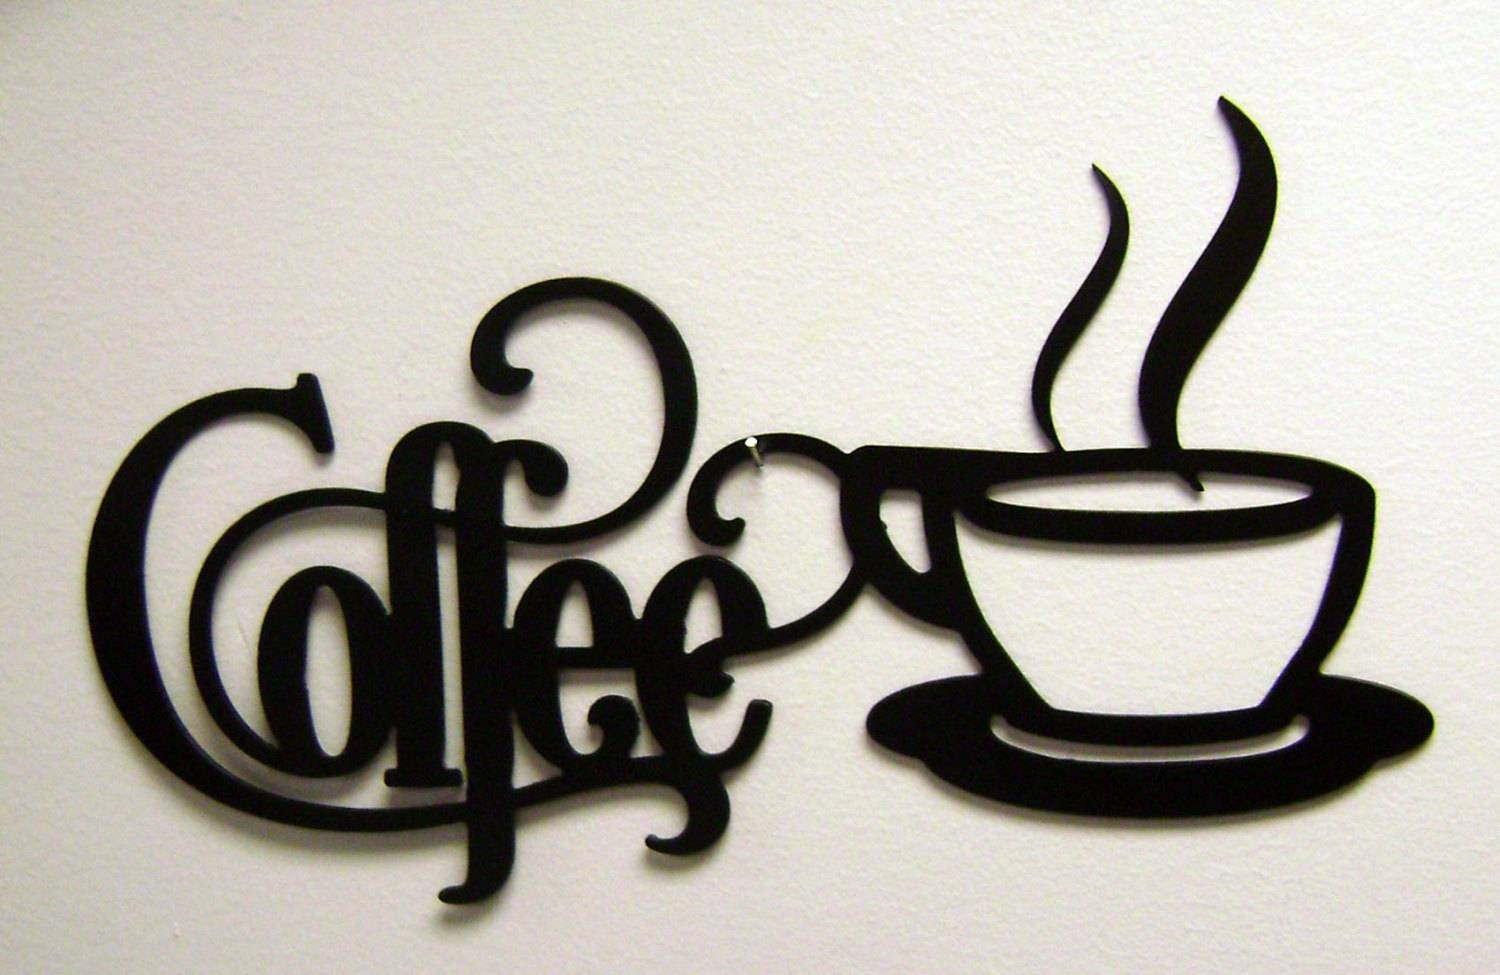 14 X 7 Bistro Coffee Sign With Mug Metal Wall Within Most Current Coffee Metal Wall Art (View 4 of 20)